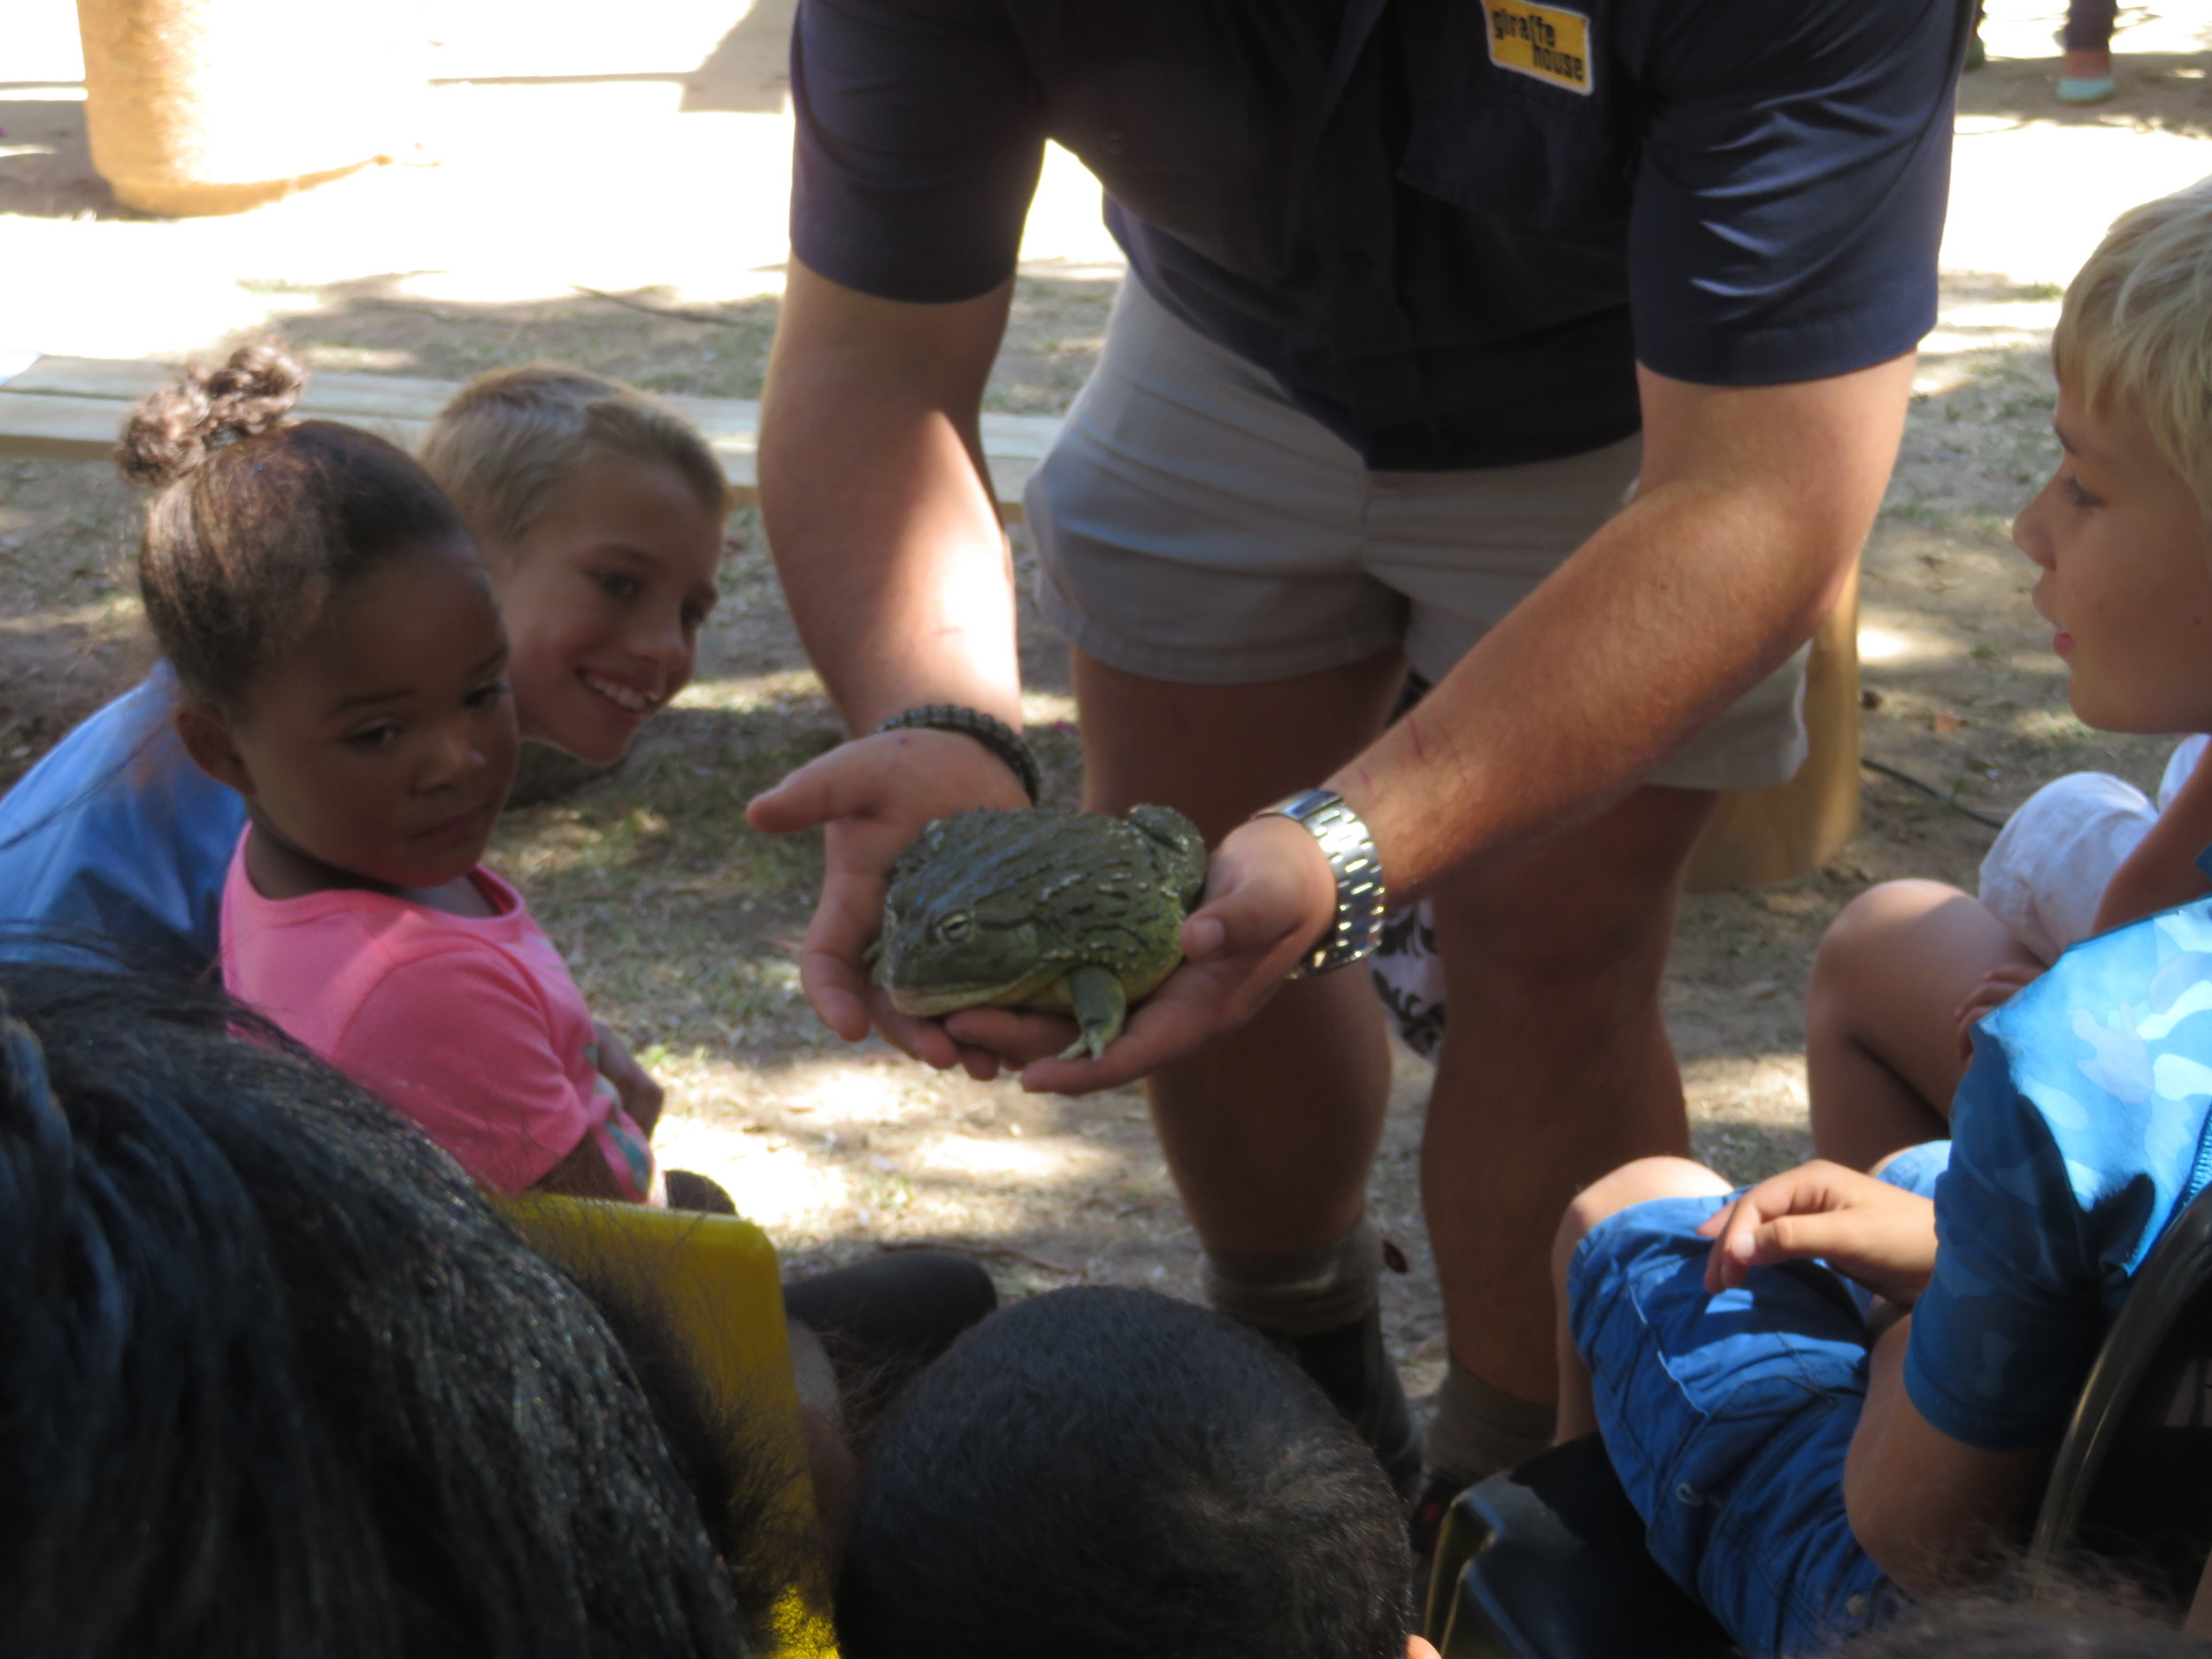 Giraffe House made a special visit to the Water Wise Festival to teach children about reptiles and more!